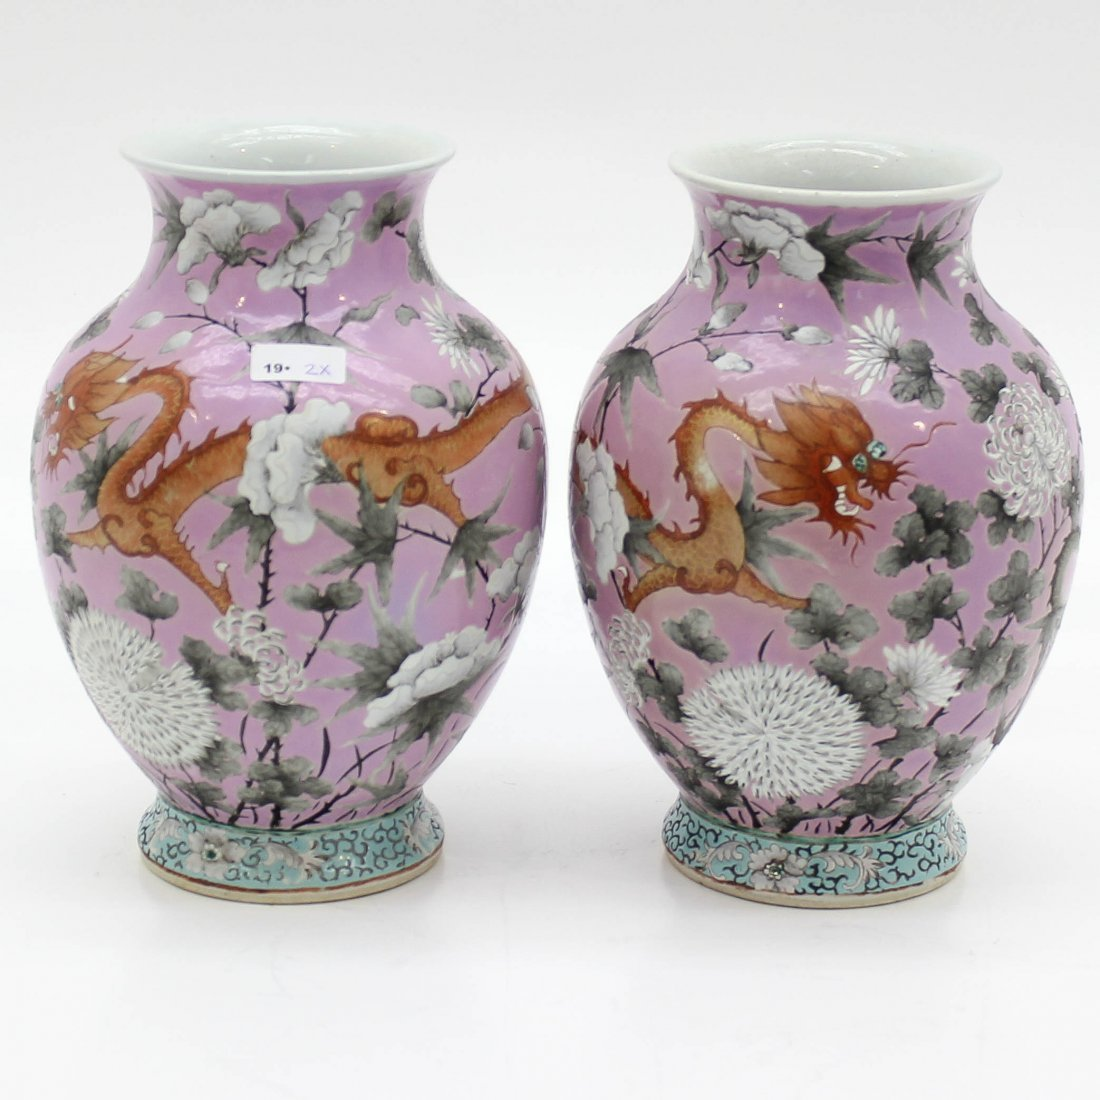 19th Century Pair of China Porcelain Vases